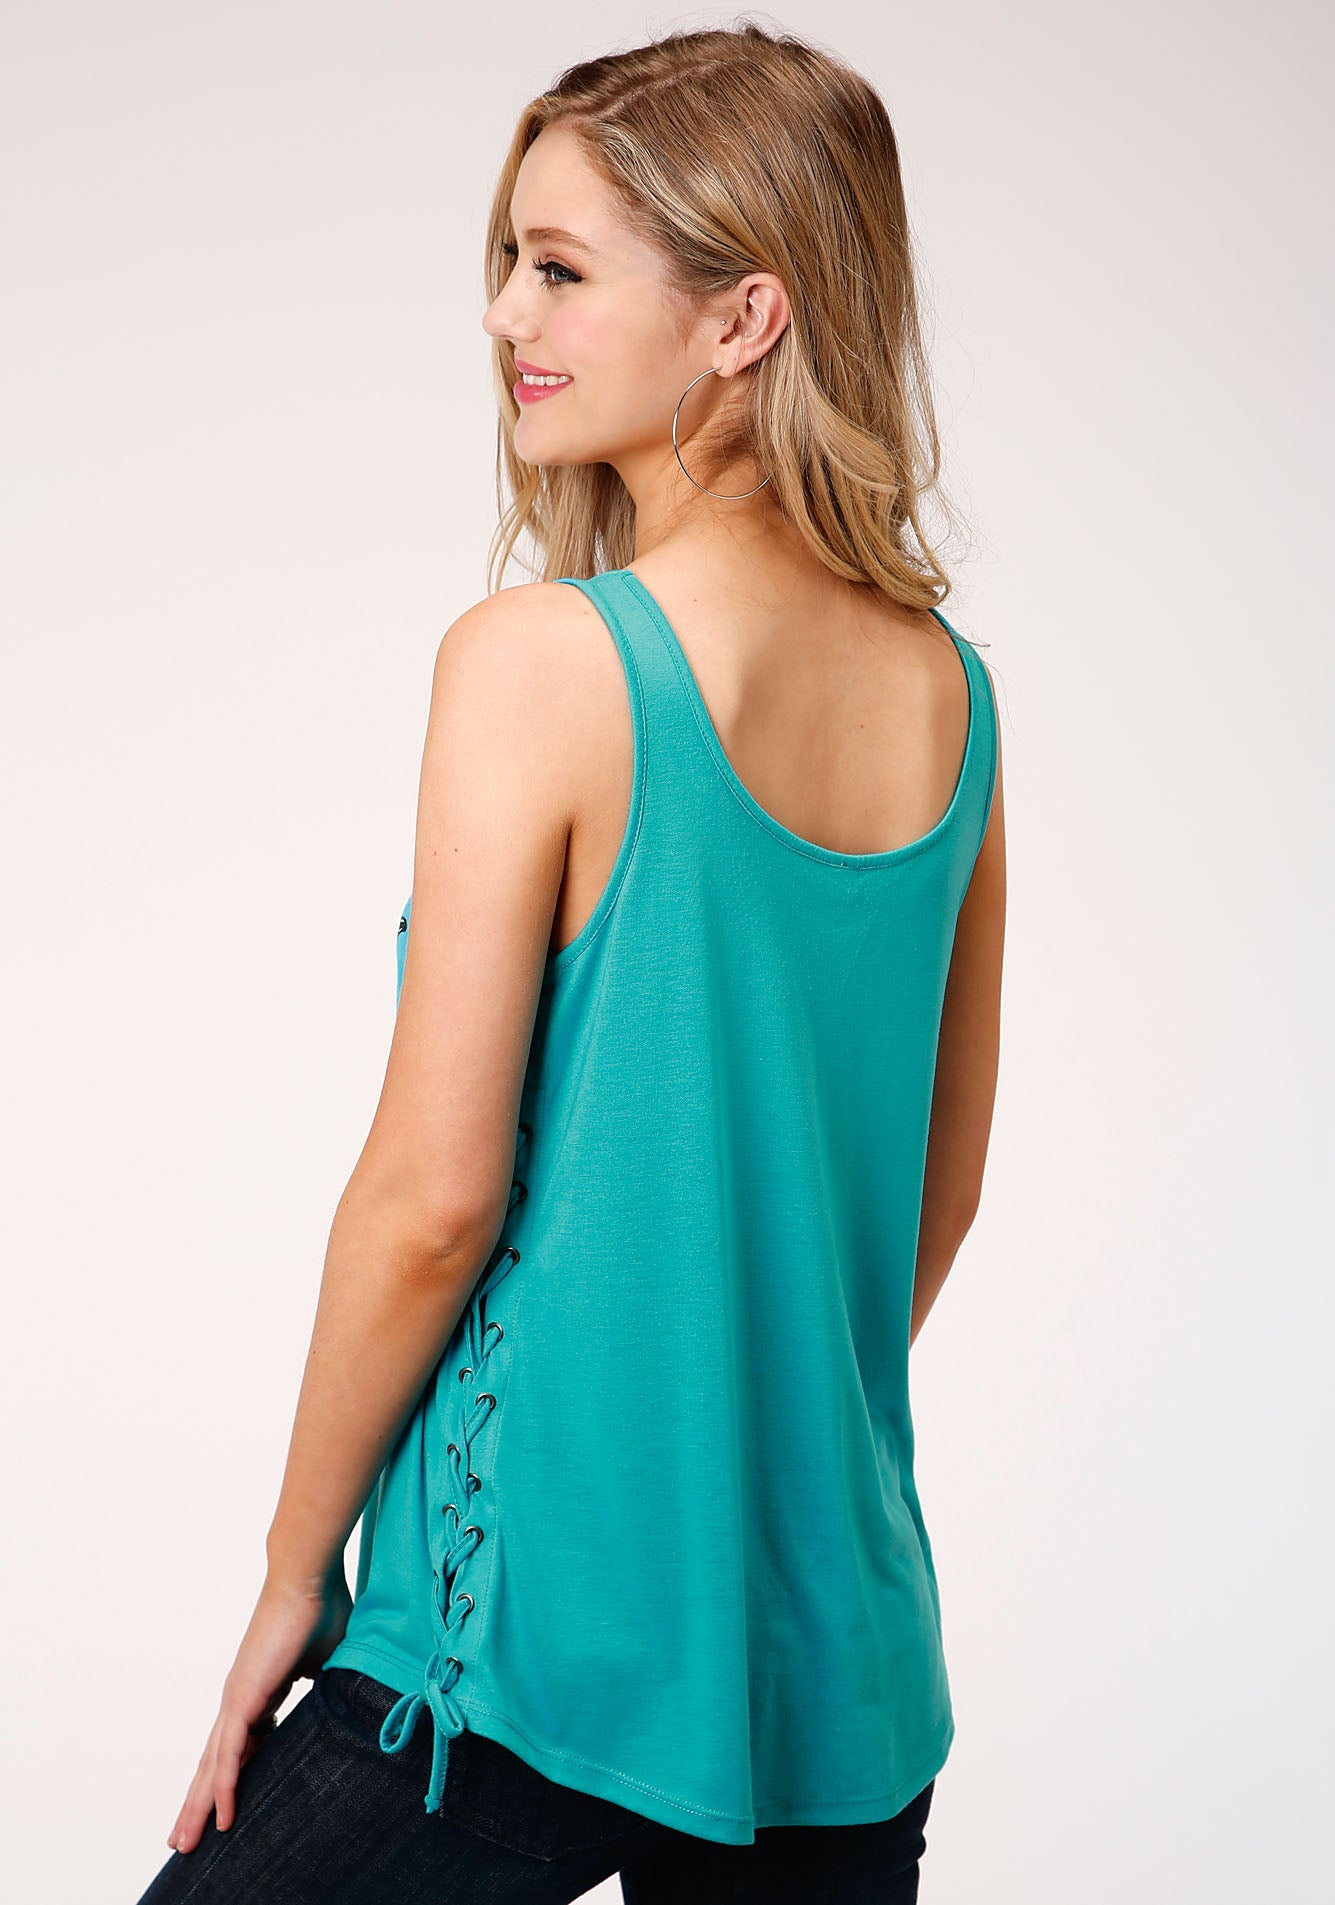 ROPER WOMENS BLUE 000134 POLY RAYON JERSEY TANK FIVE STAR COLLECTION- SPRING III SLEEVELESS